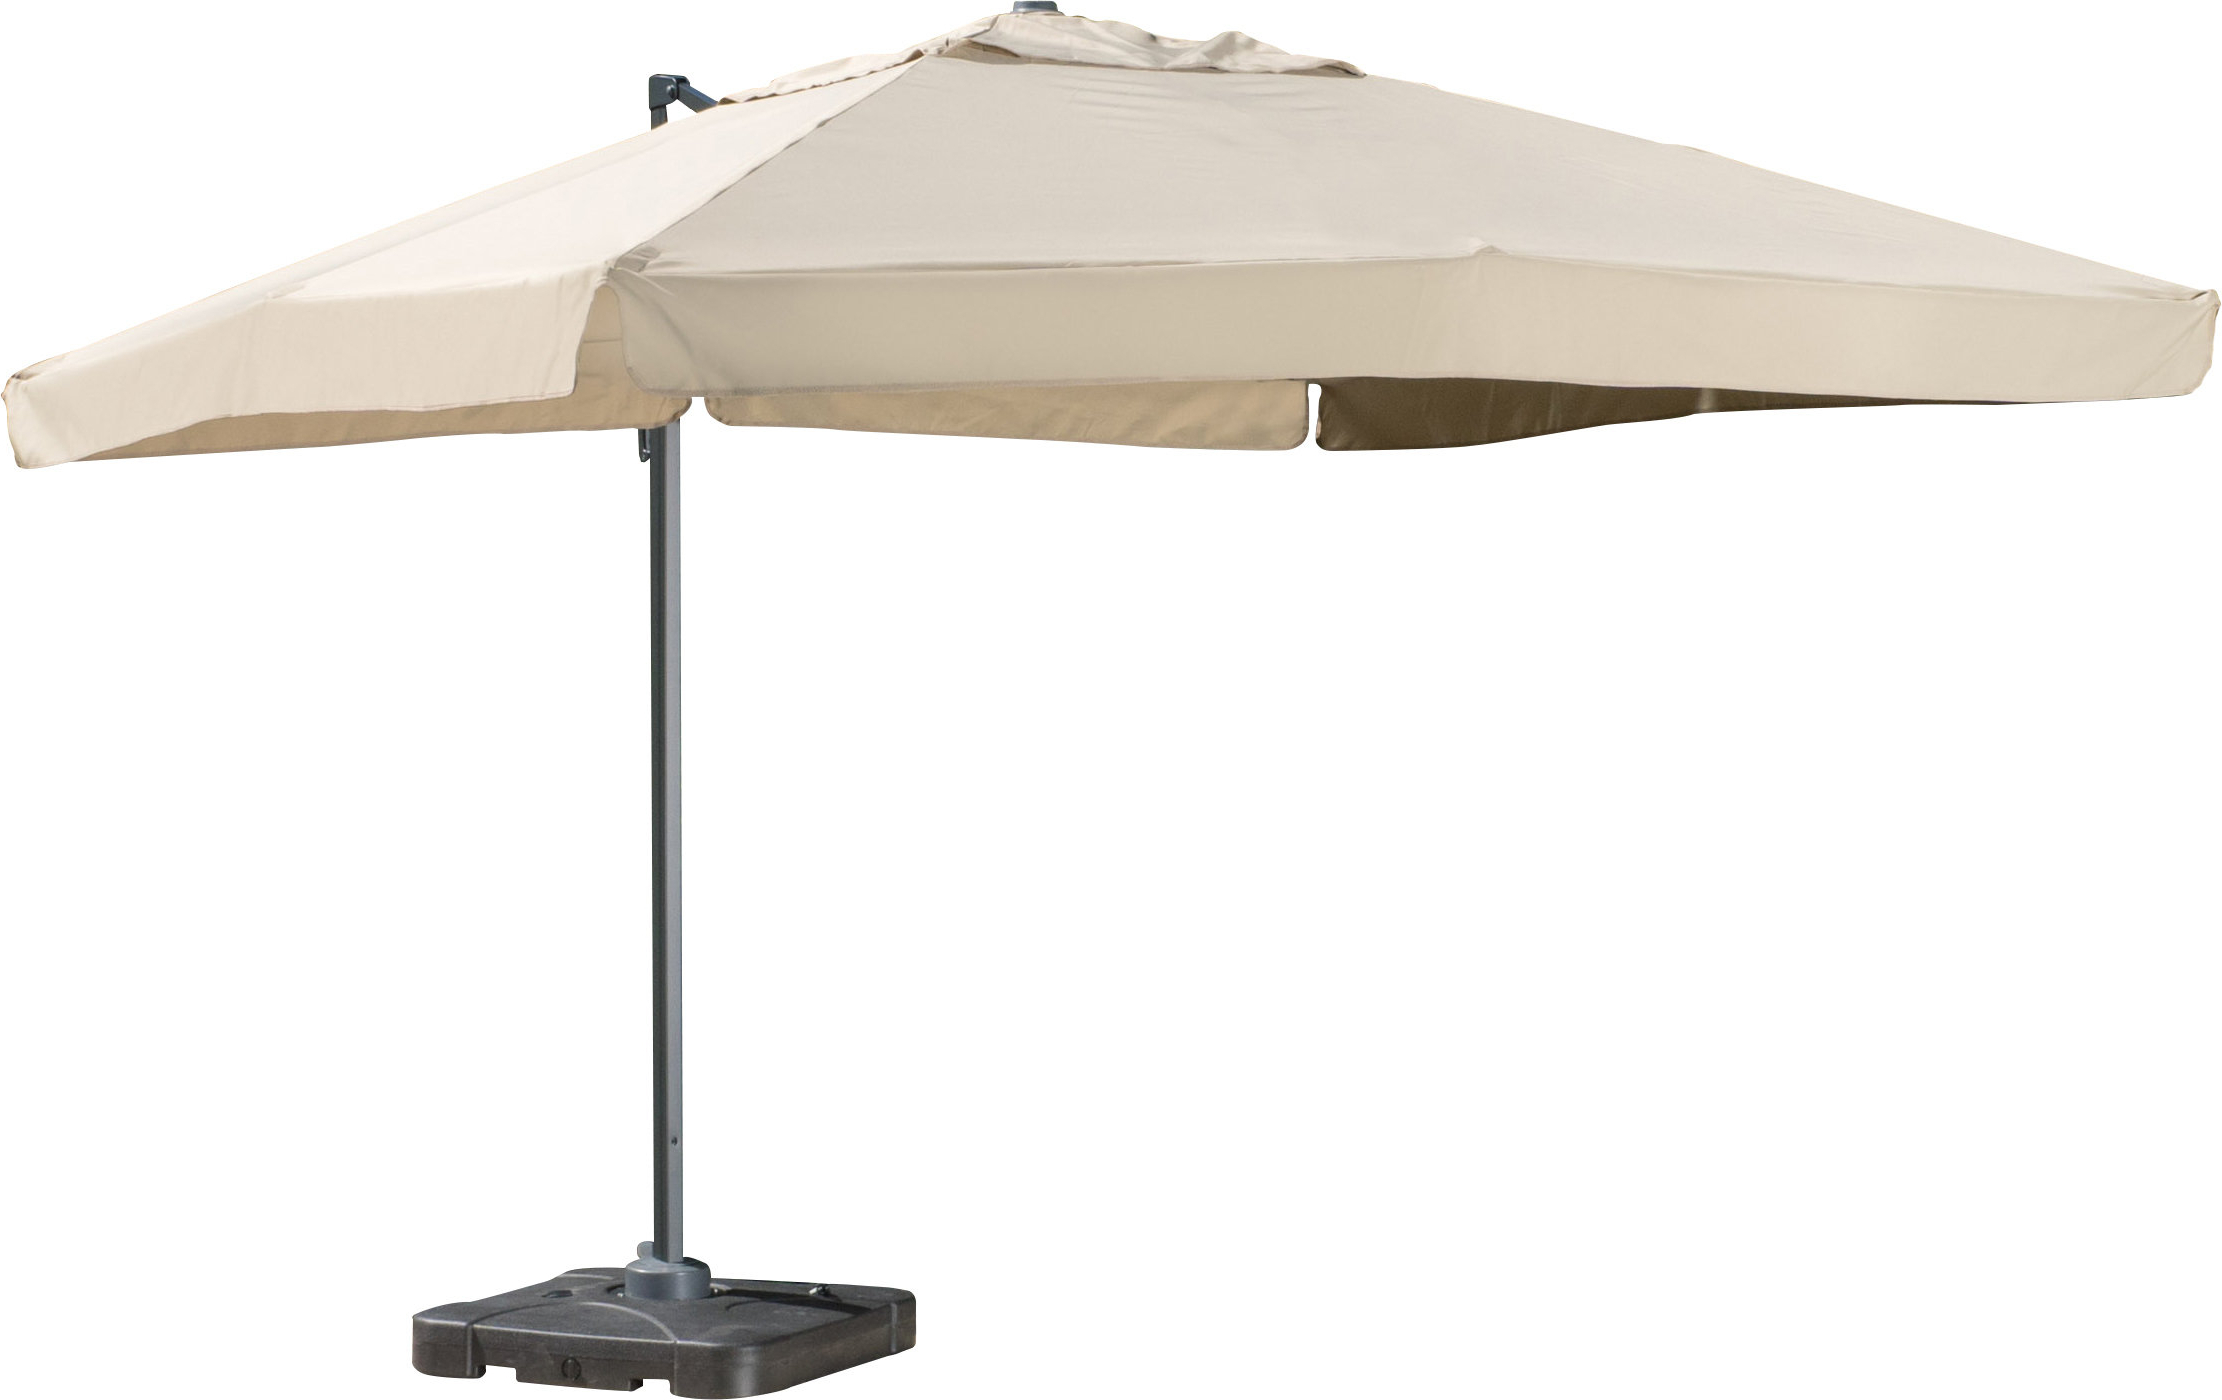 Bondi 9.8' Square Cantilever Umbrella Regarding Recent Bondi Square Cantilever Umbrellas (Gallery 1 of 20)